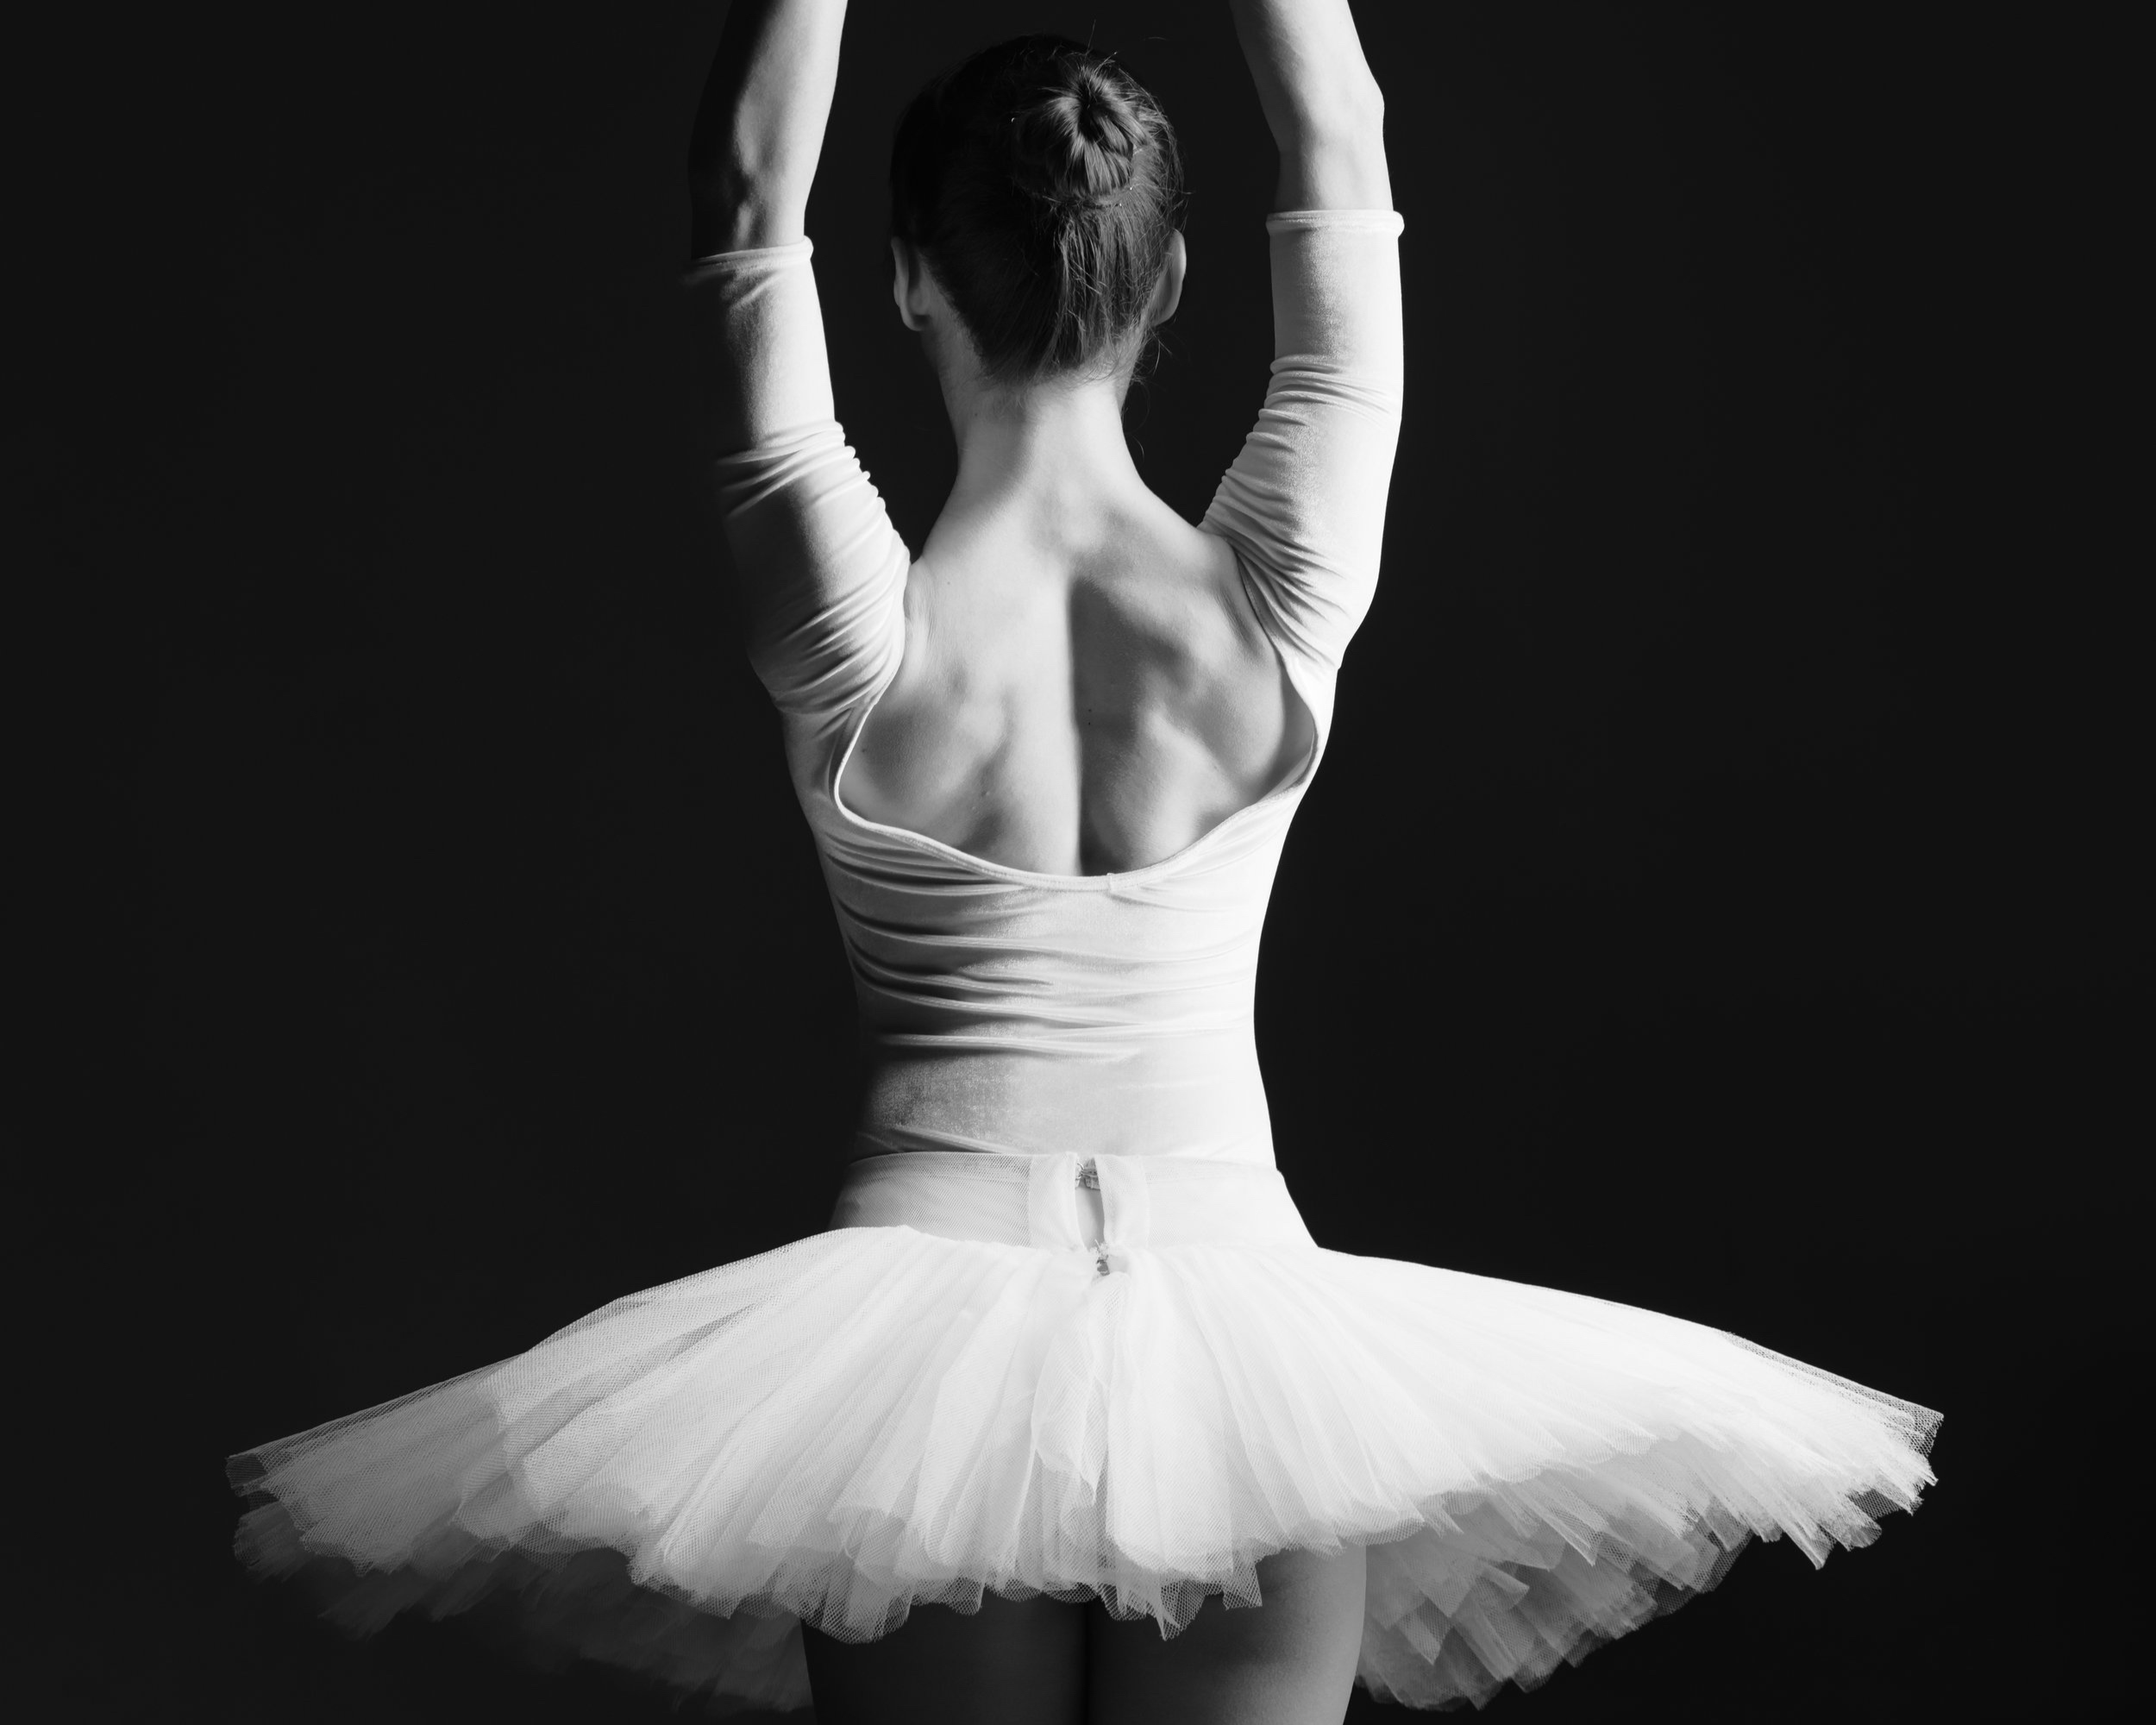 $300 - Classical Practice Tutu - Another creation made by Victoria Lauder of Victory Tutus, this time a classical tutu for those performing more traditional roles. See more at www.victorytutus.comAvailability: First donations at the $300 will receive 1 classical practice tutu.